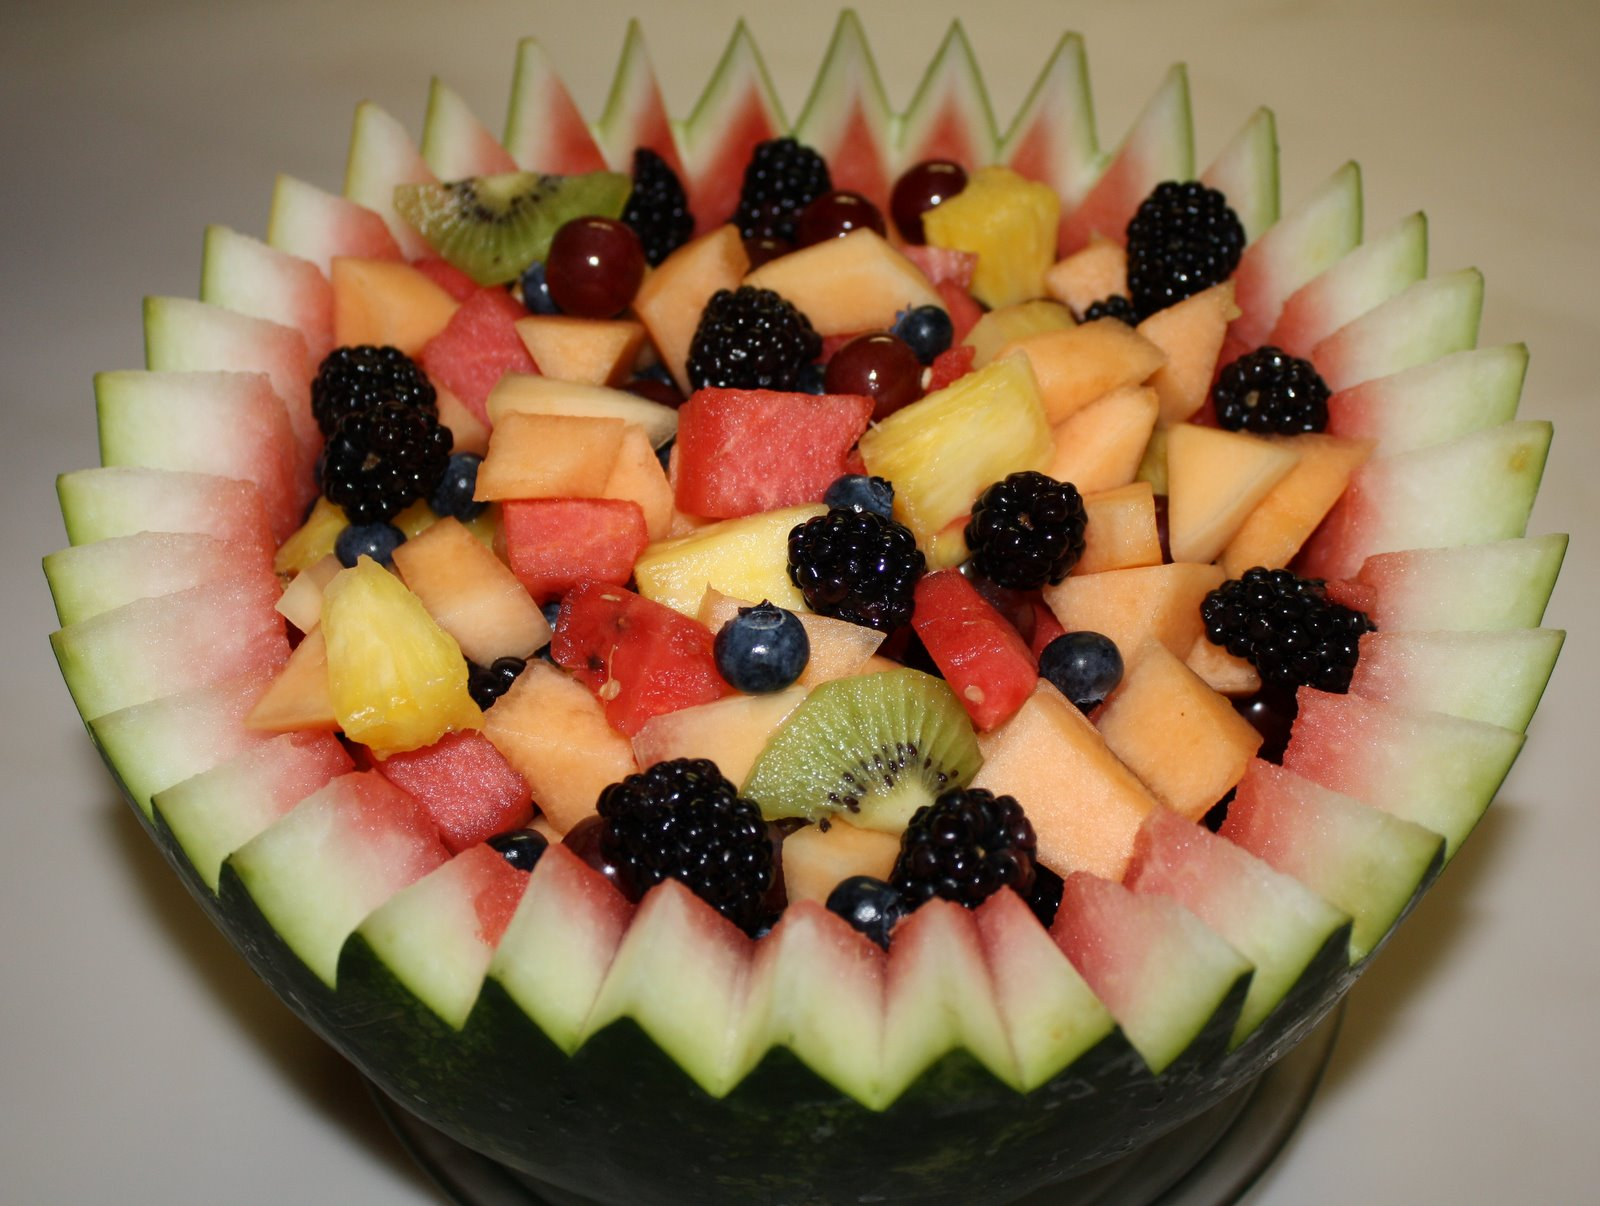 ... in town. my mum made this fantastic fruit salad in a watermelon bowl